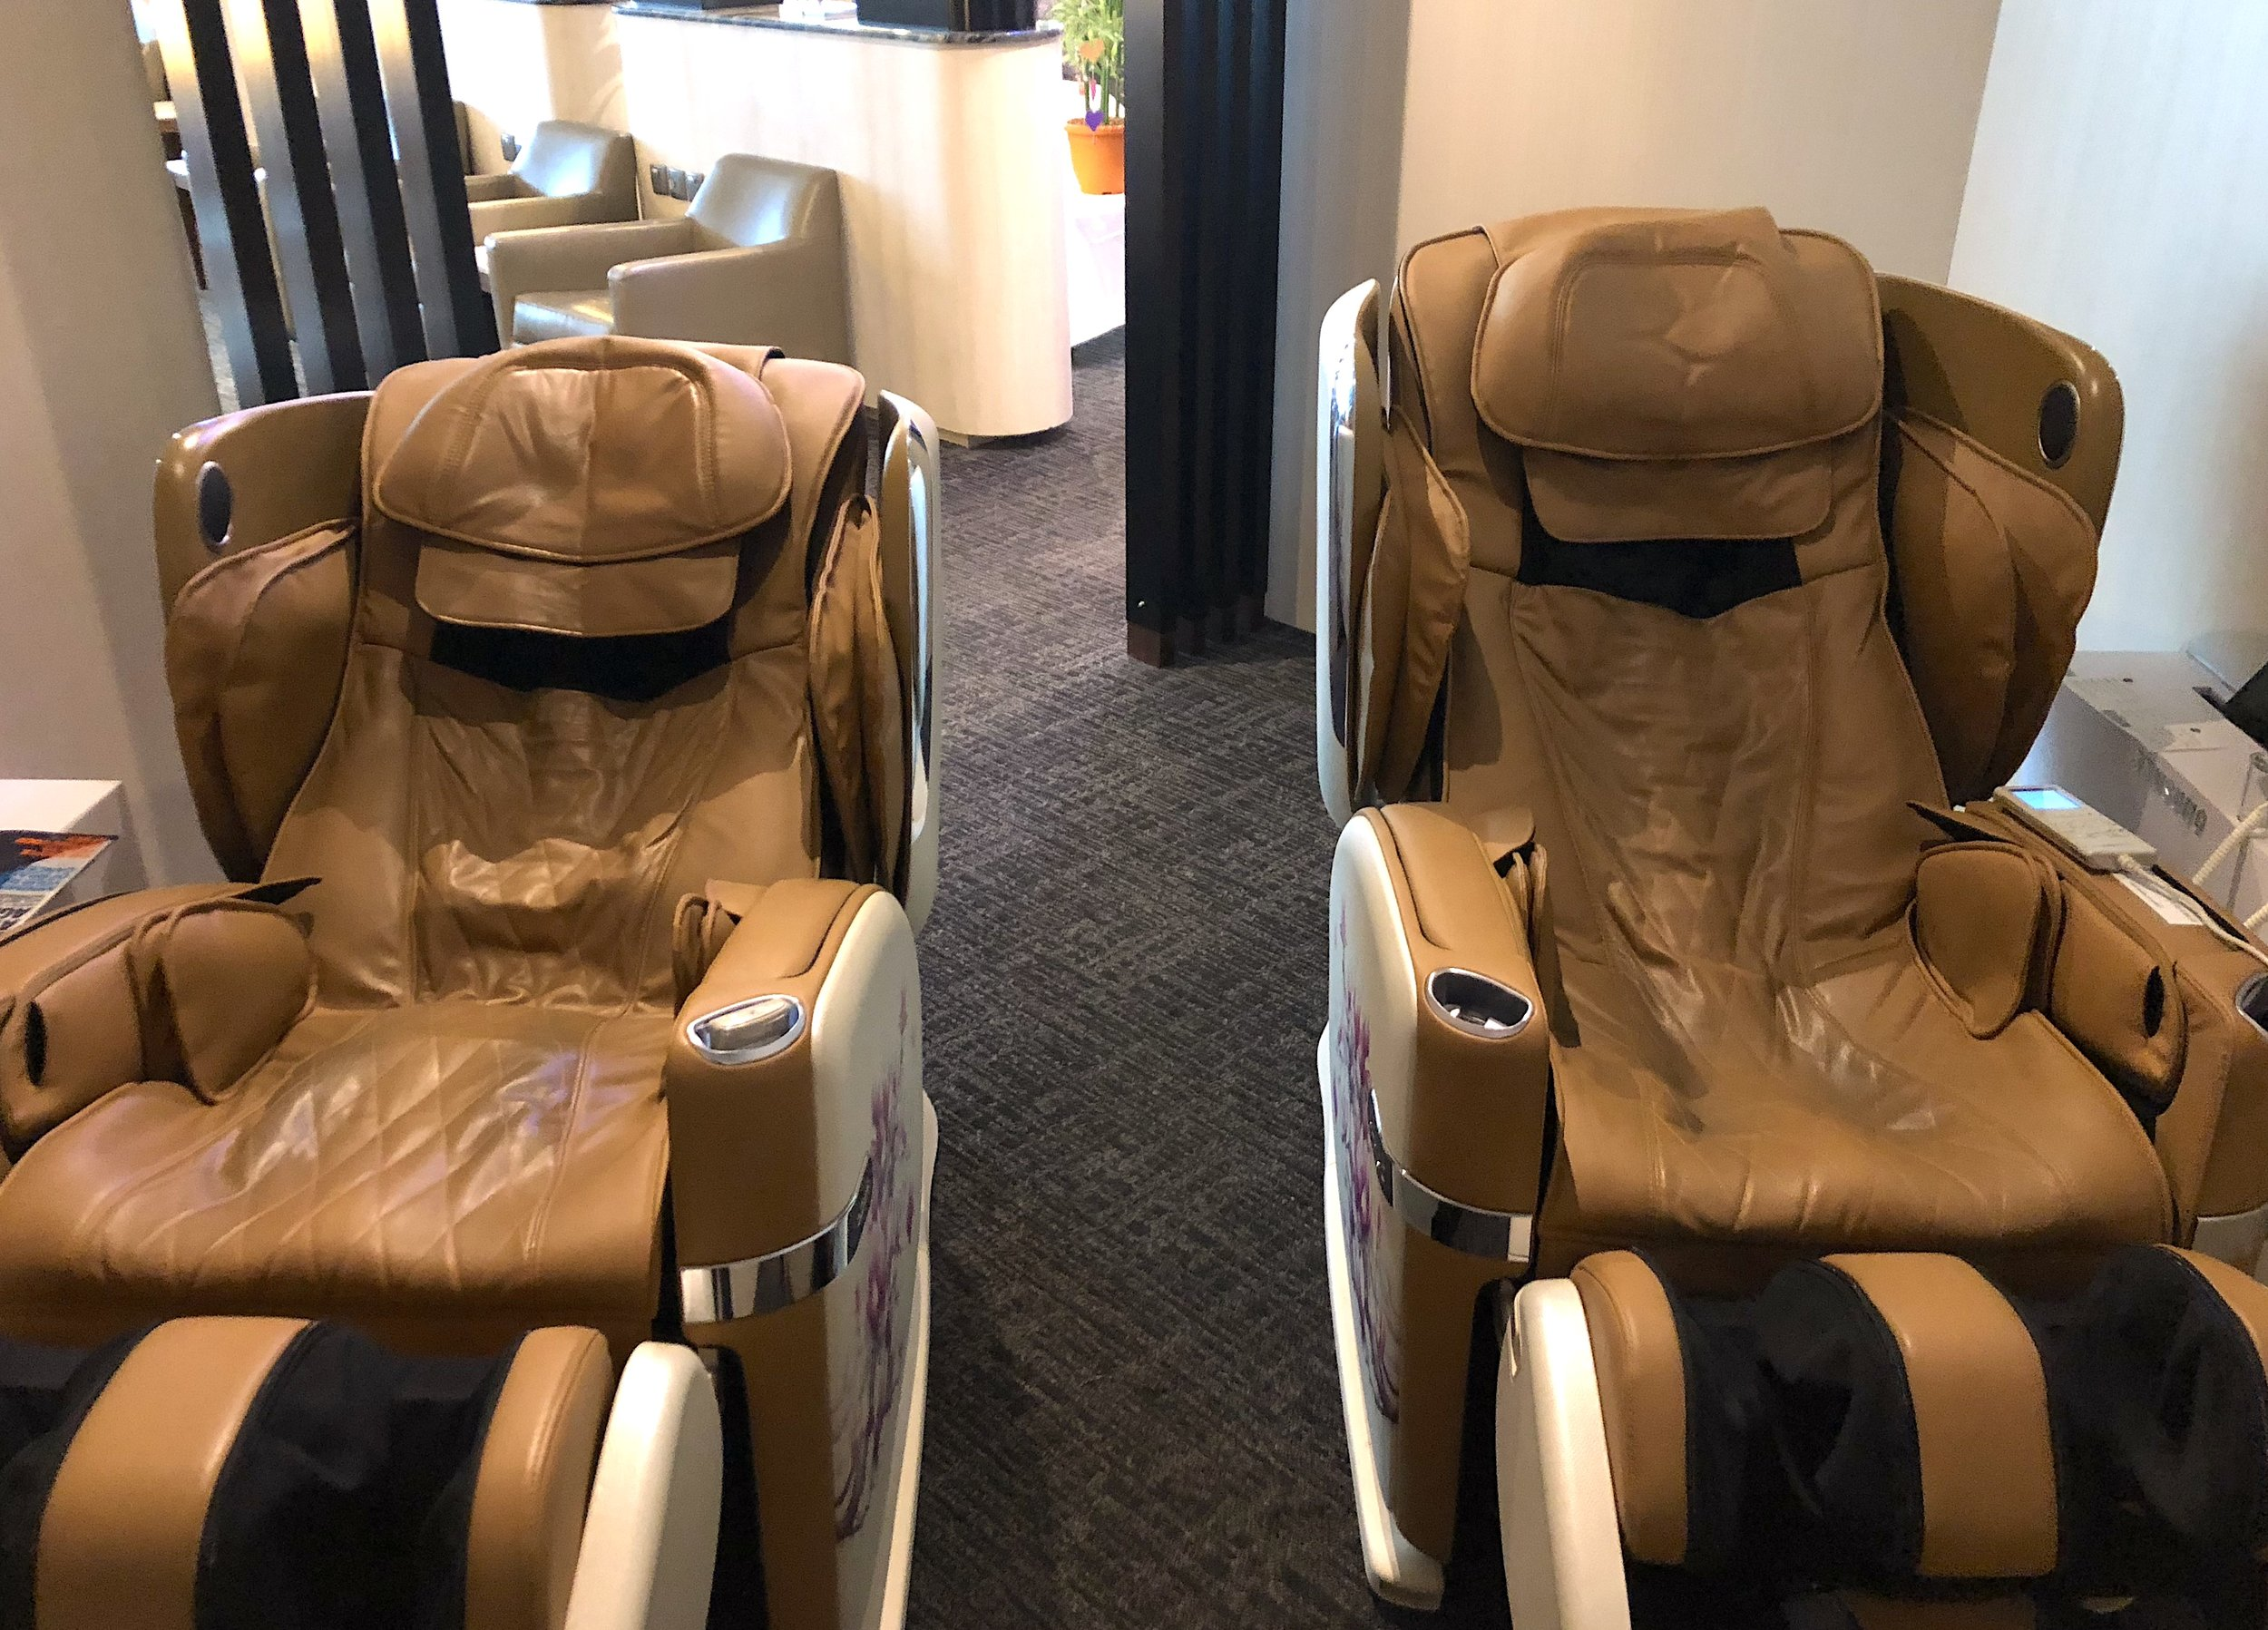 Surprise! Massage chair available for use. I dozed off using the massage chair.